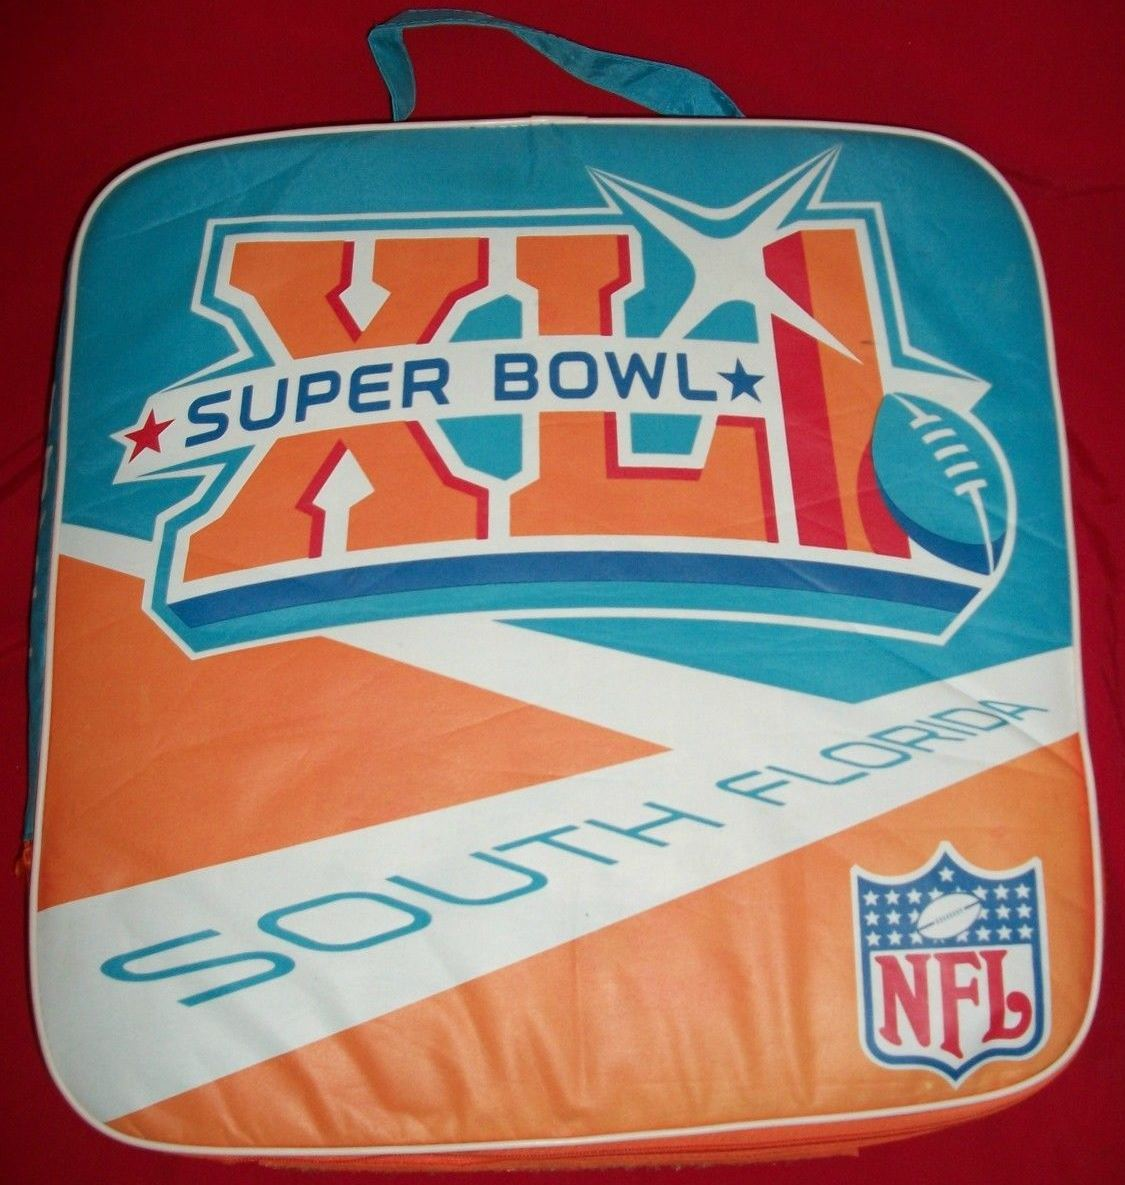 Super Bowl XLI        Cushion